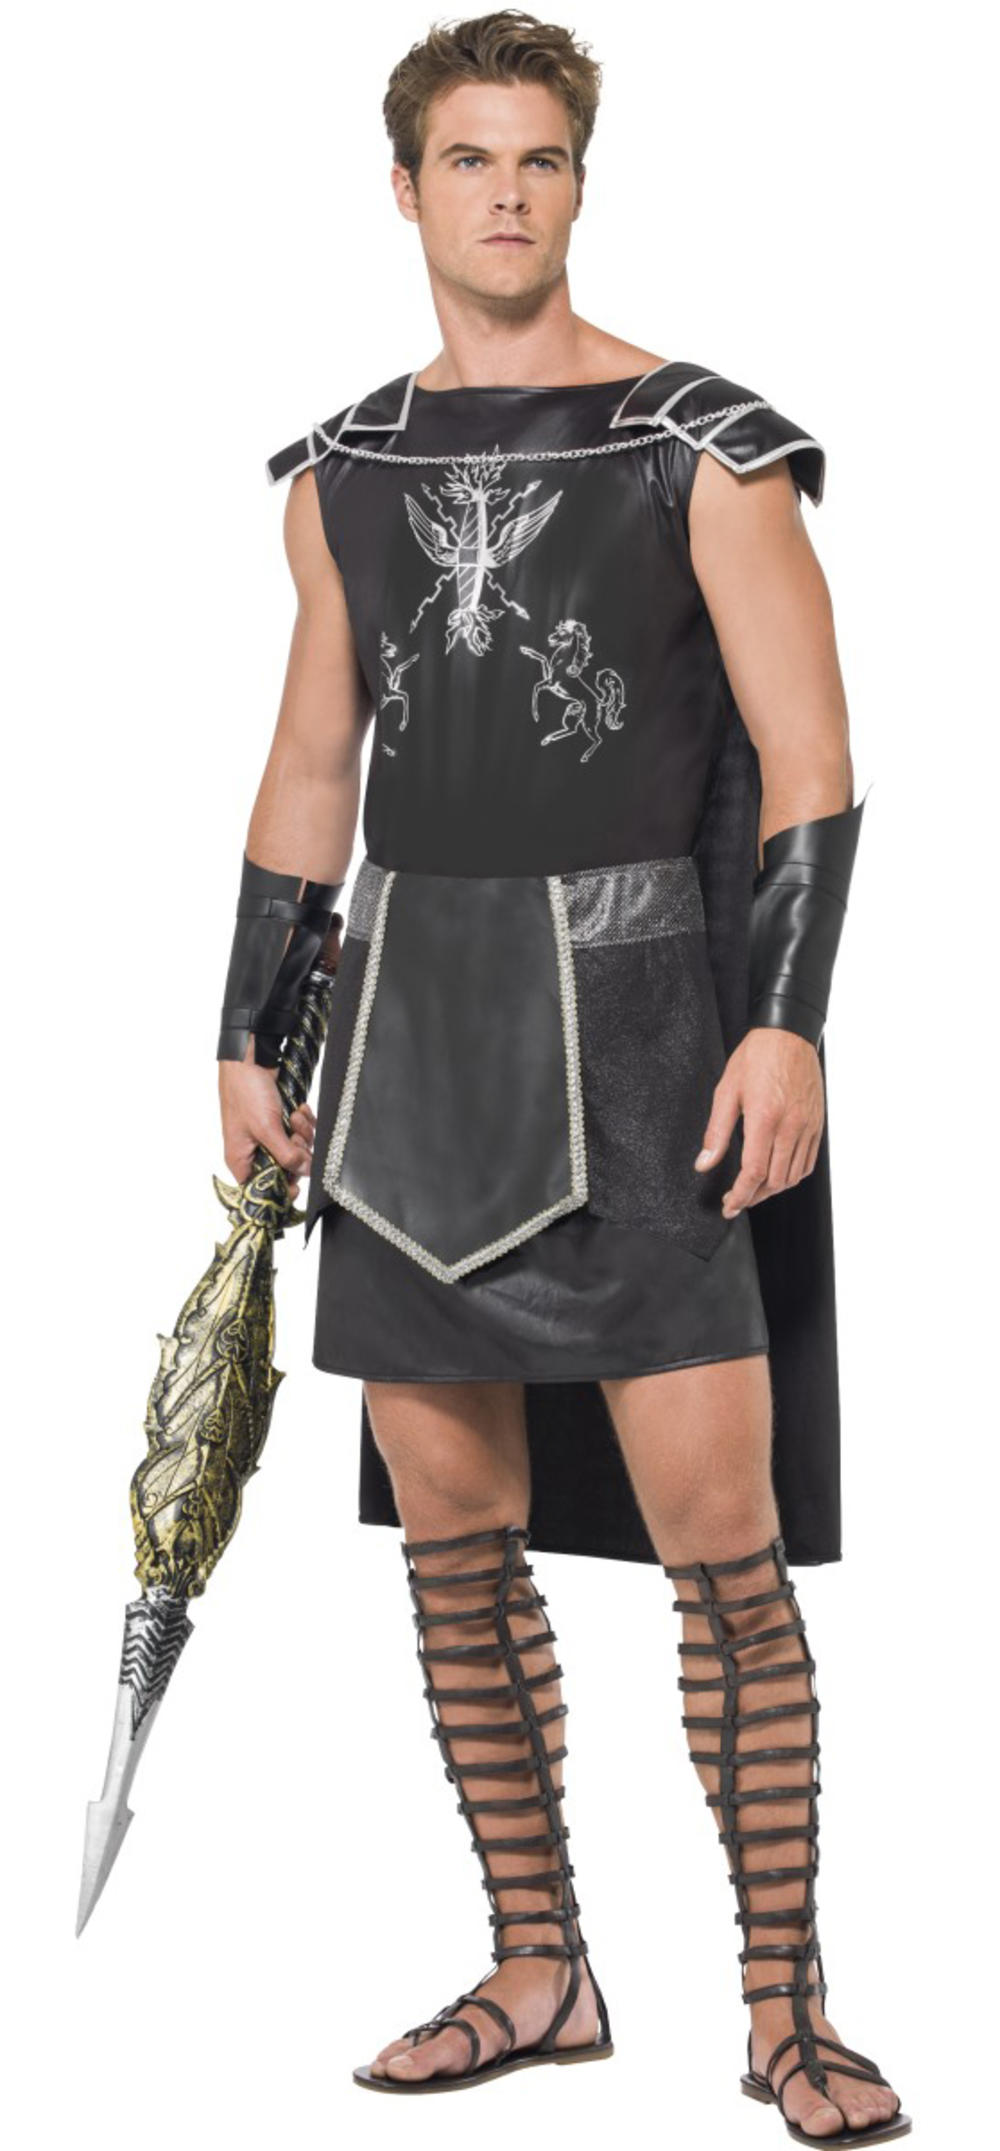 Gladiator Fever Mens Fancy Dress Soldier Centurion Adult Roman Costume Outfit